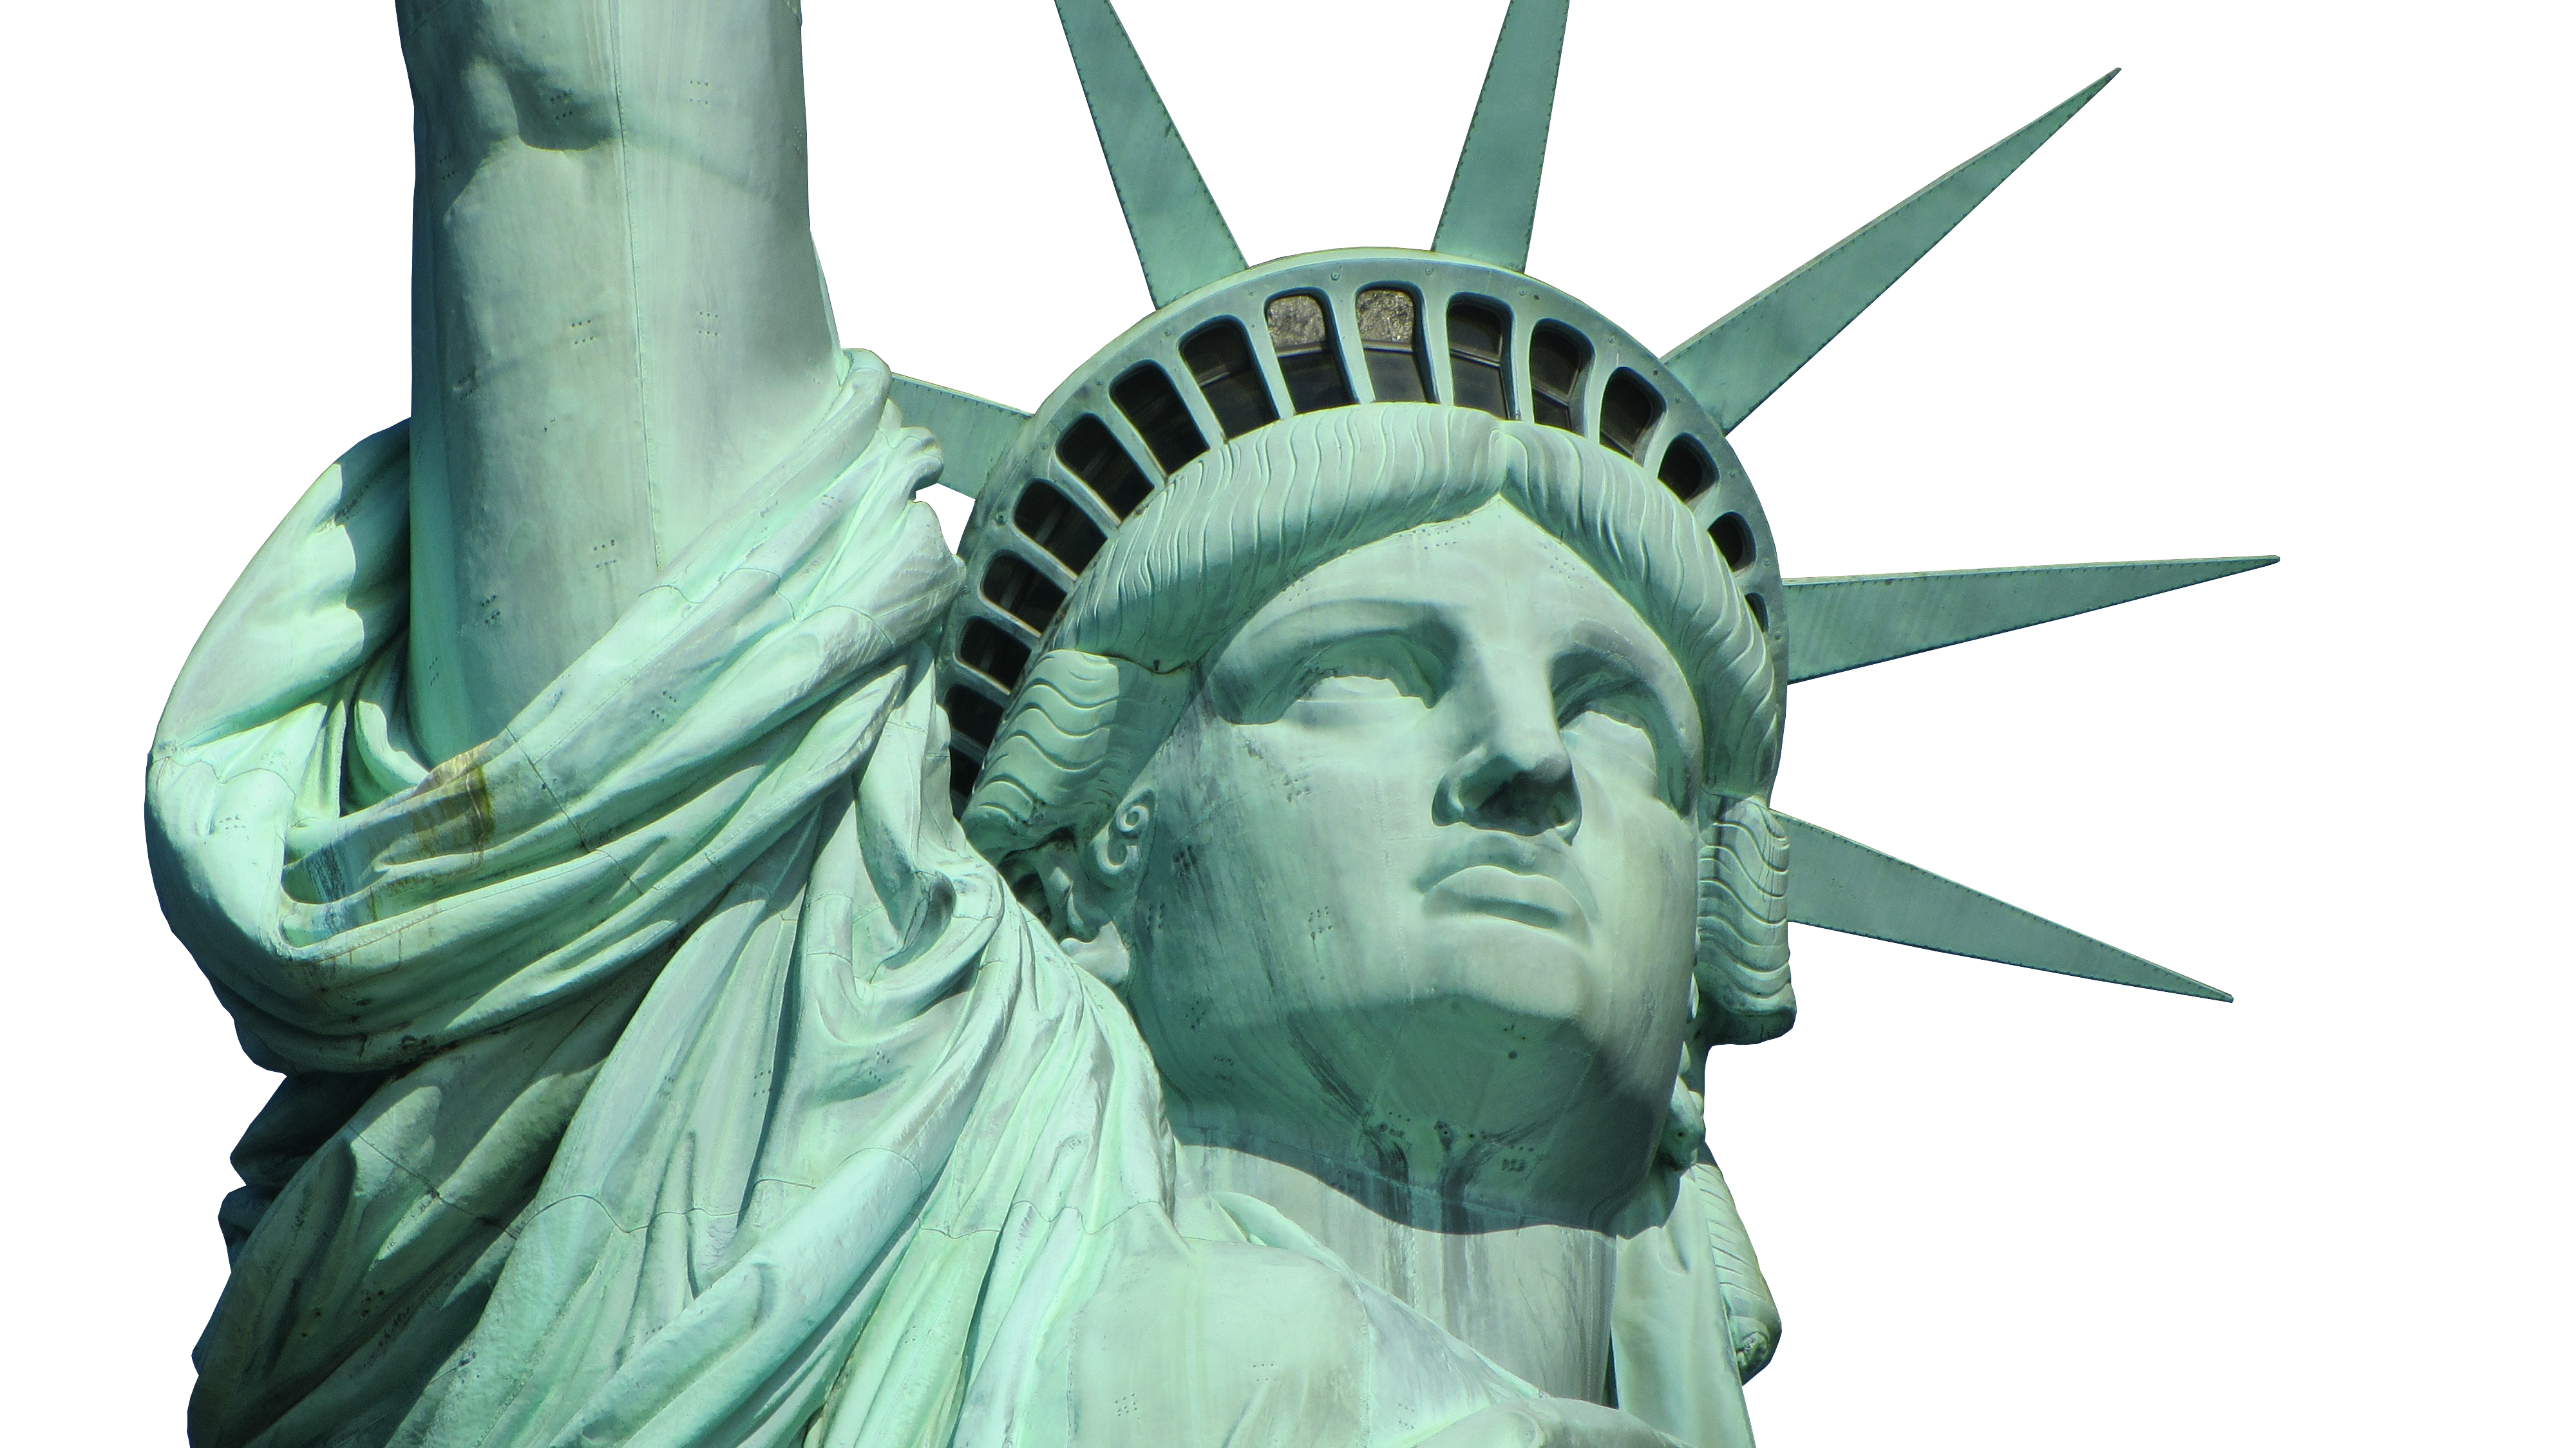 Statue Of Liberty, Face, Crown